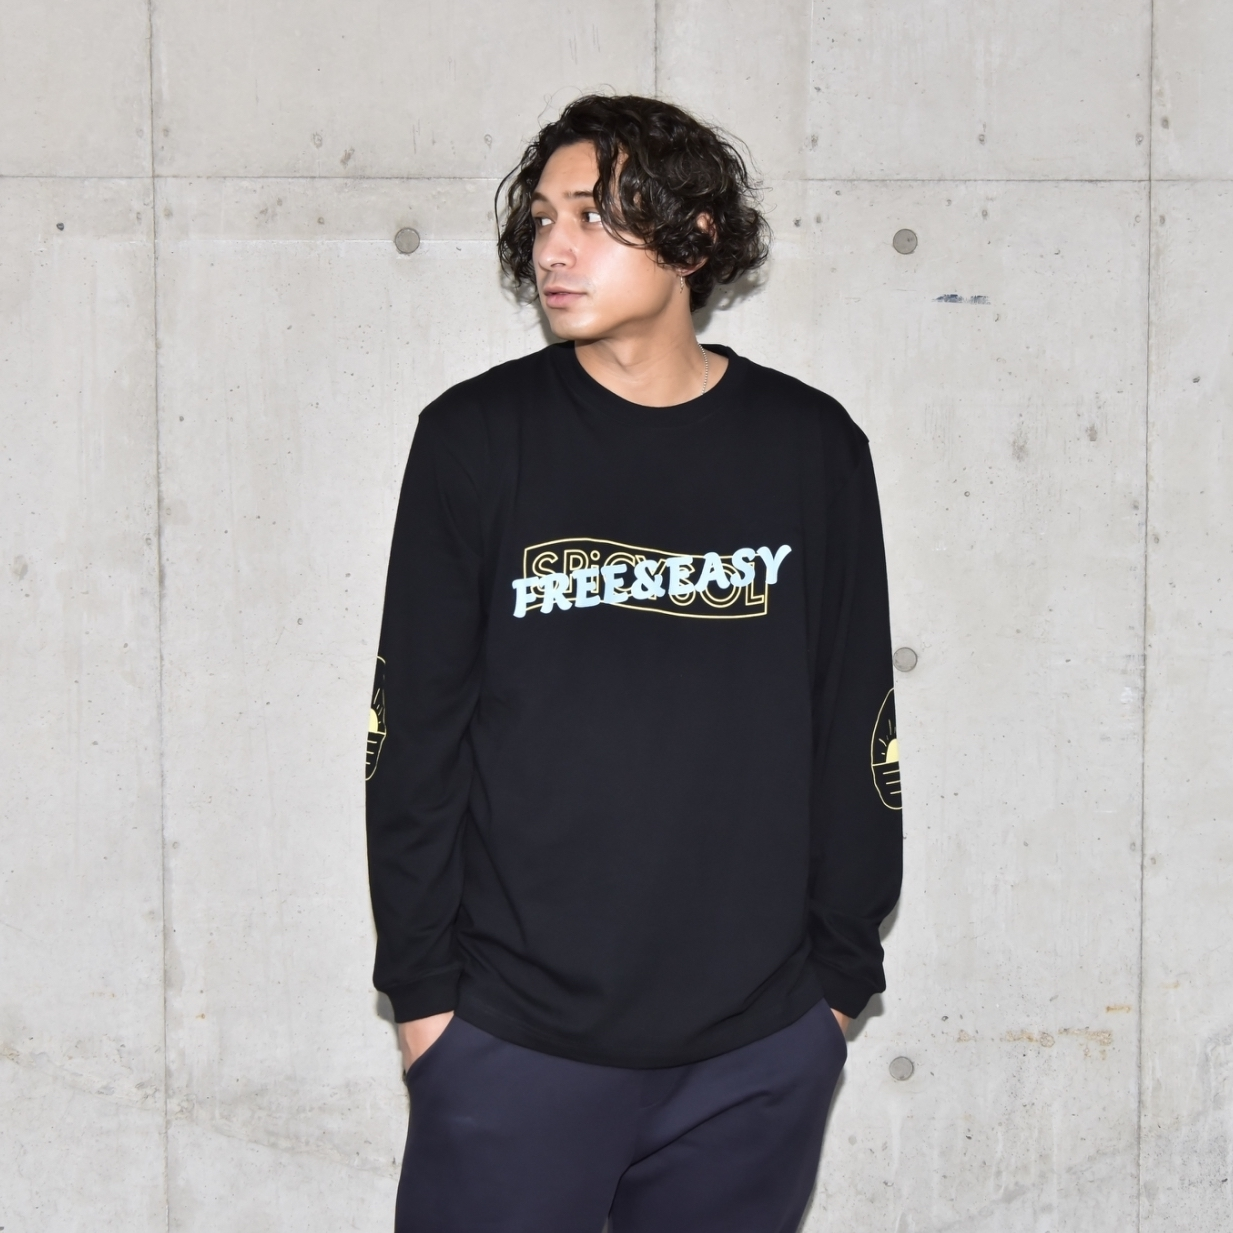 FREE&EASY Long Sleeve Tee